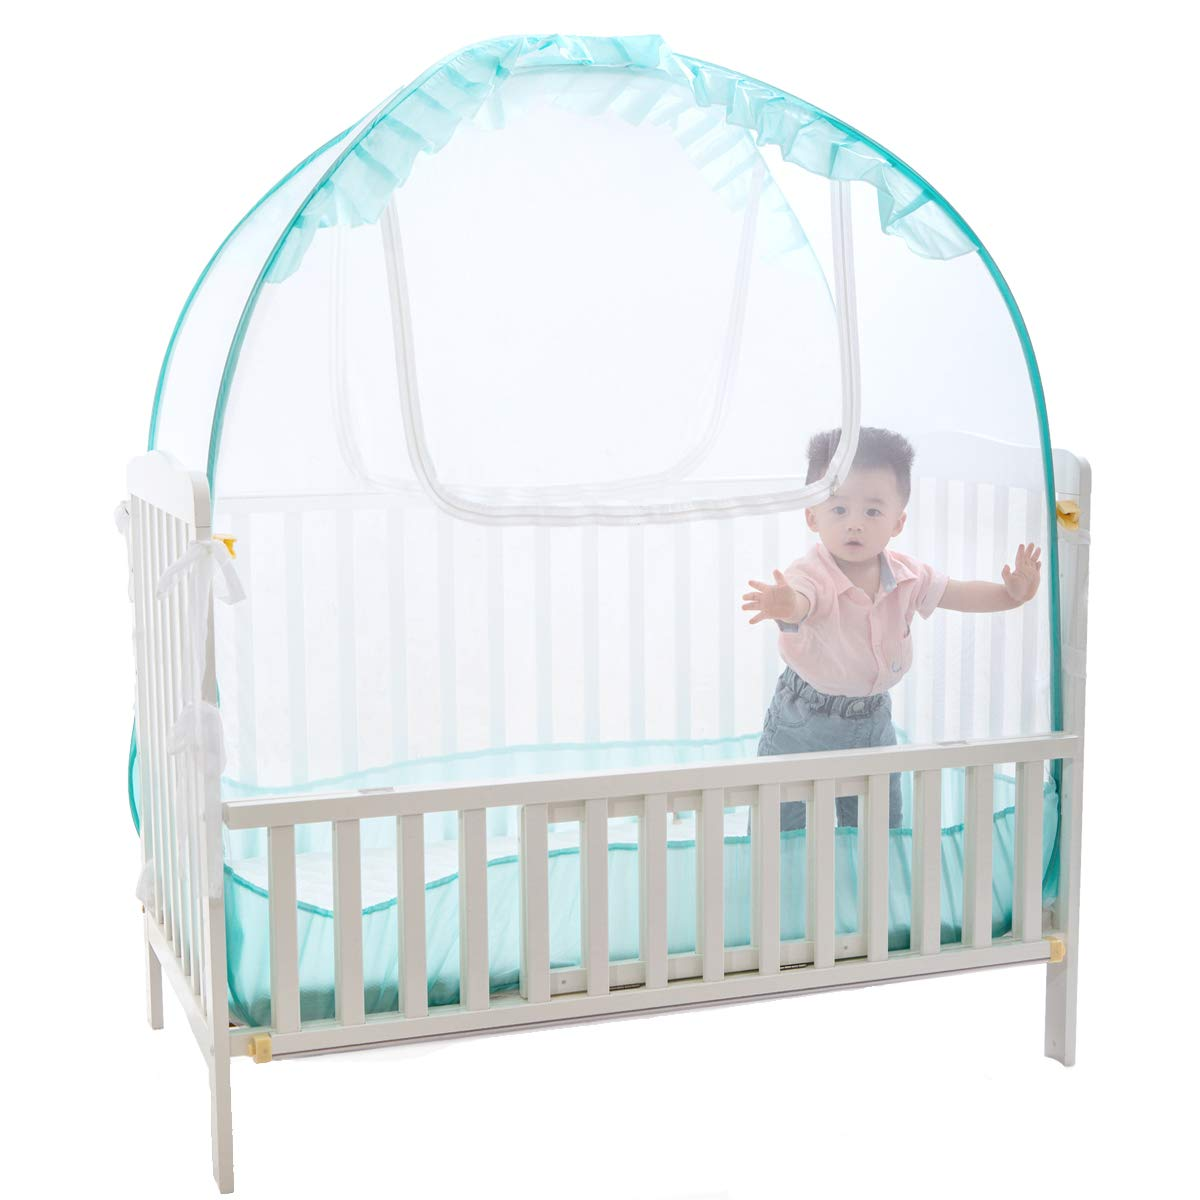 Baby Crib Pop up Tent, V-Fyee Baby Bed Mosquito Net Safety Tent Canopy Cover to Keep Toddler from Climbing Out and Keep Insects Out (Cyan, 56''L x 26''W x 48''H)